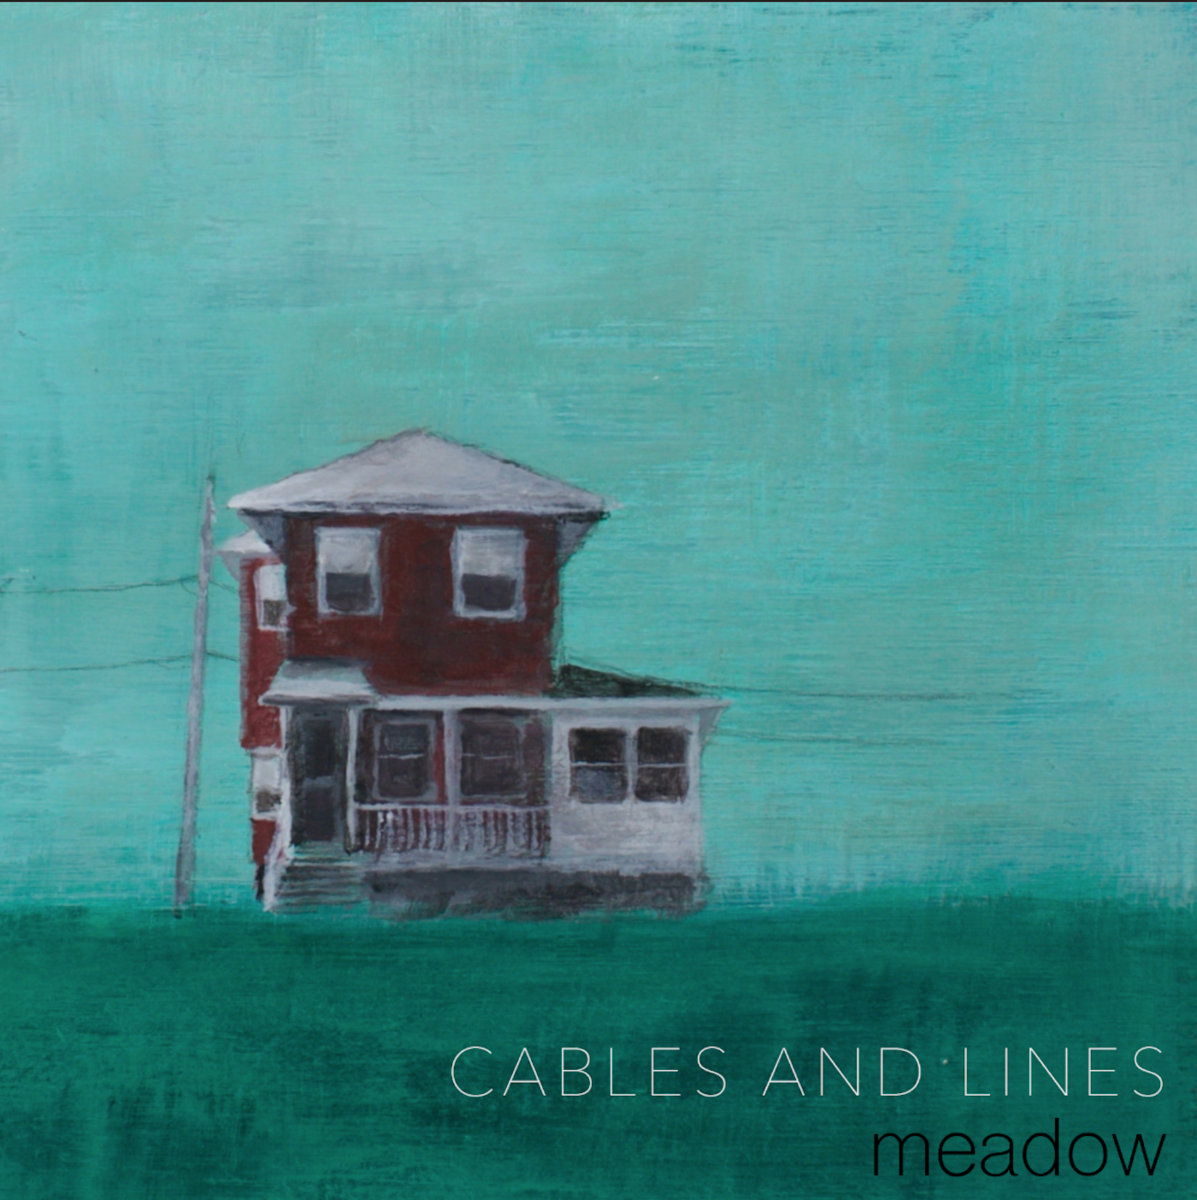 Cables and Lines - Meadow